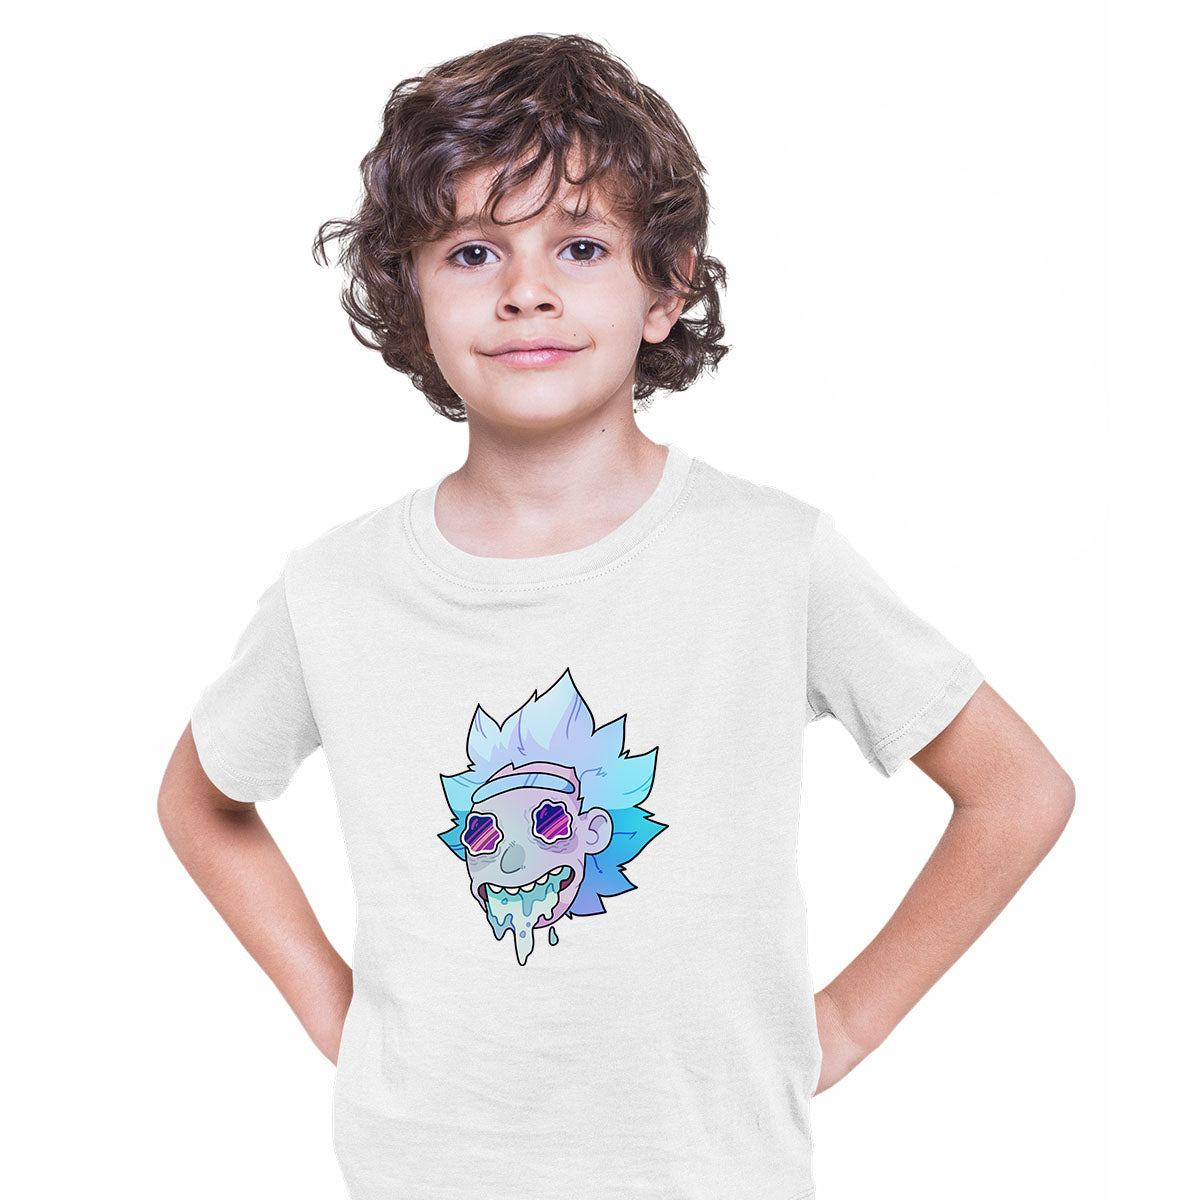 Rick Sanchez Jeez Comedy Science Fiction Crew Mate Funny White T-shirt for Kids